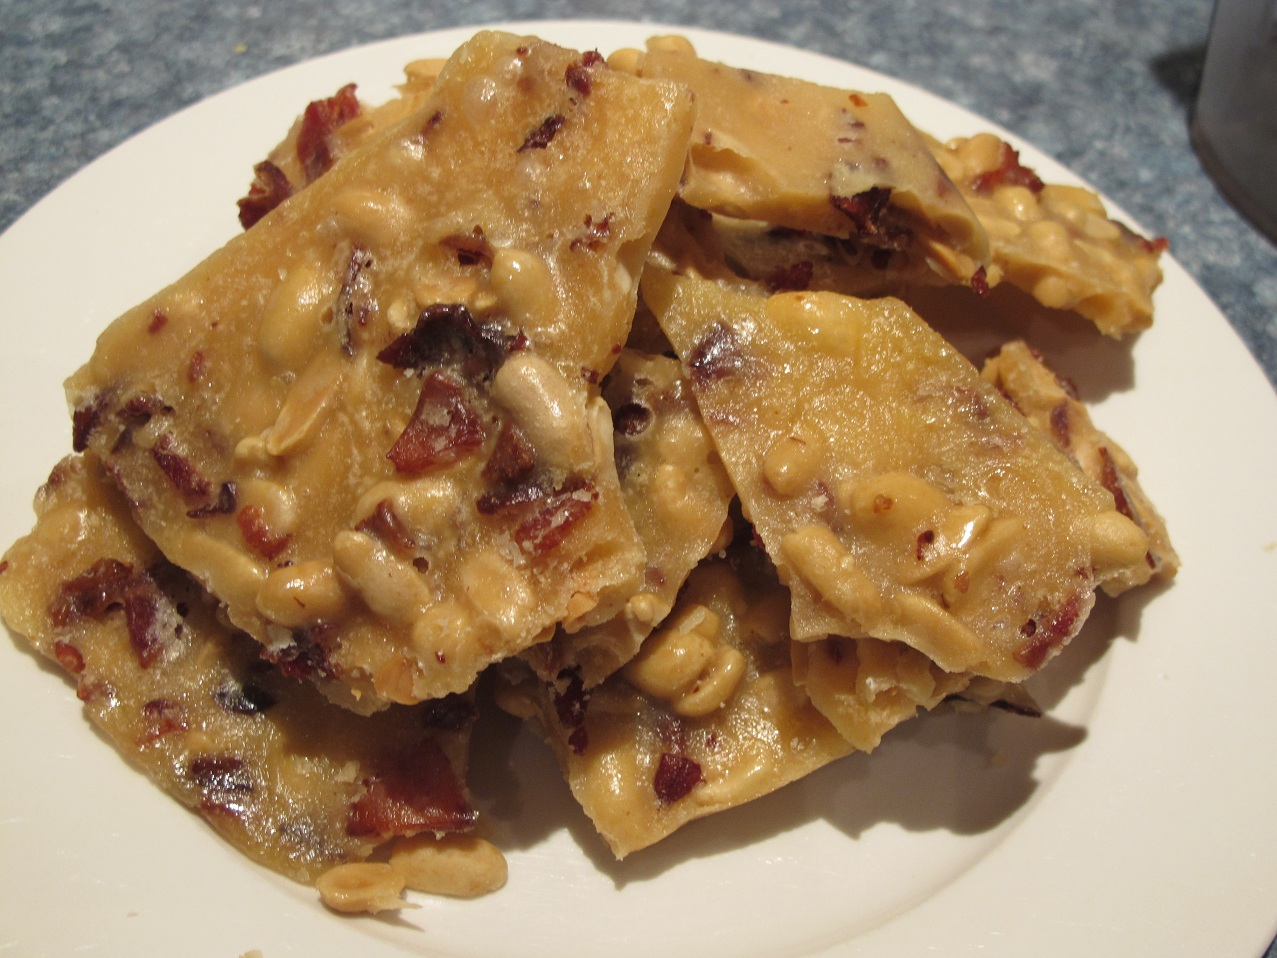 It's Bacon Week! Bacon peanut brittle! | Gusface Grillah